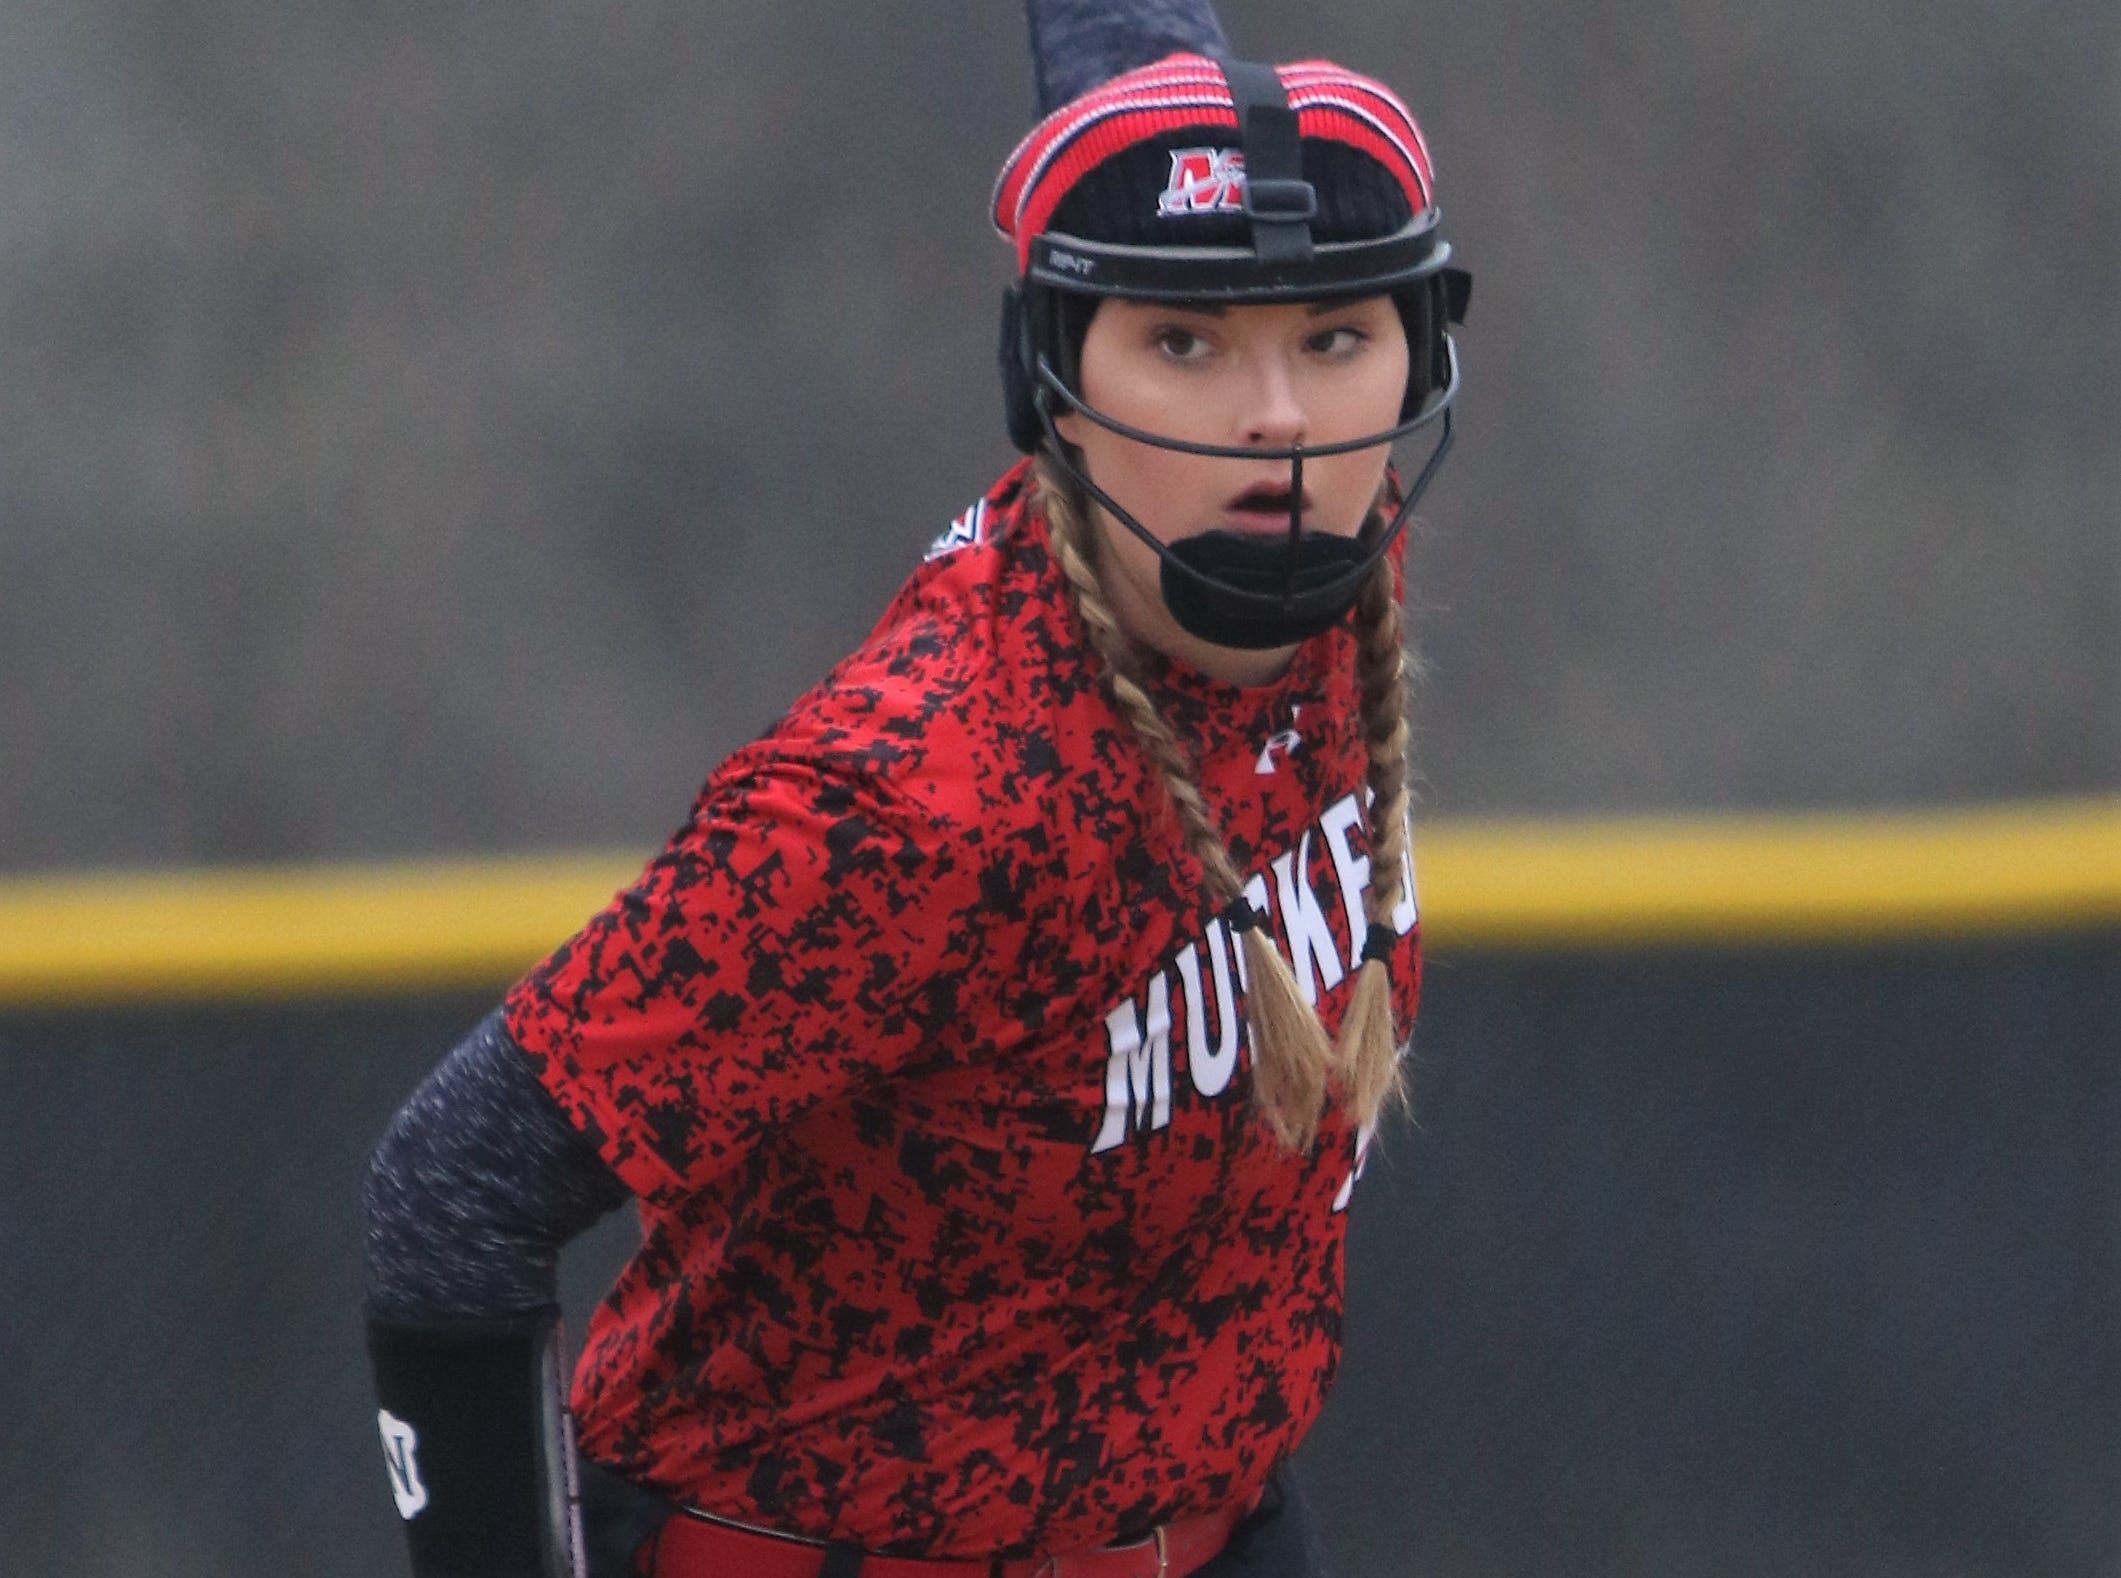 Muskego pitcher Jordan Caby winds up against Waukesha North during a game on April 12, 2019.